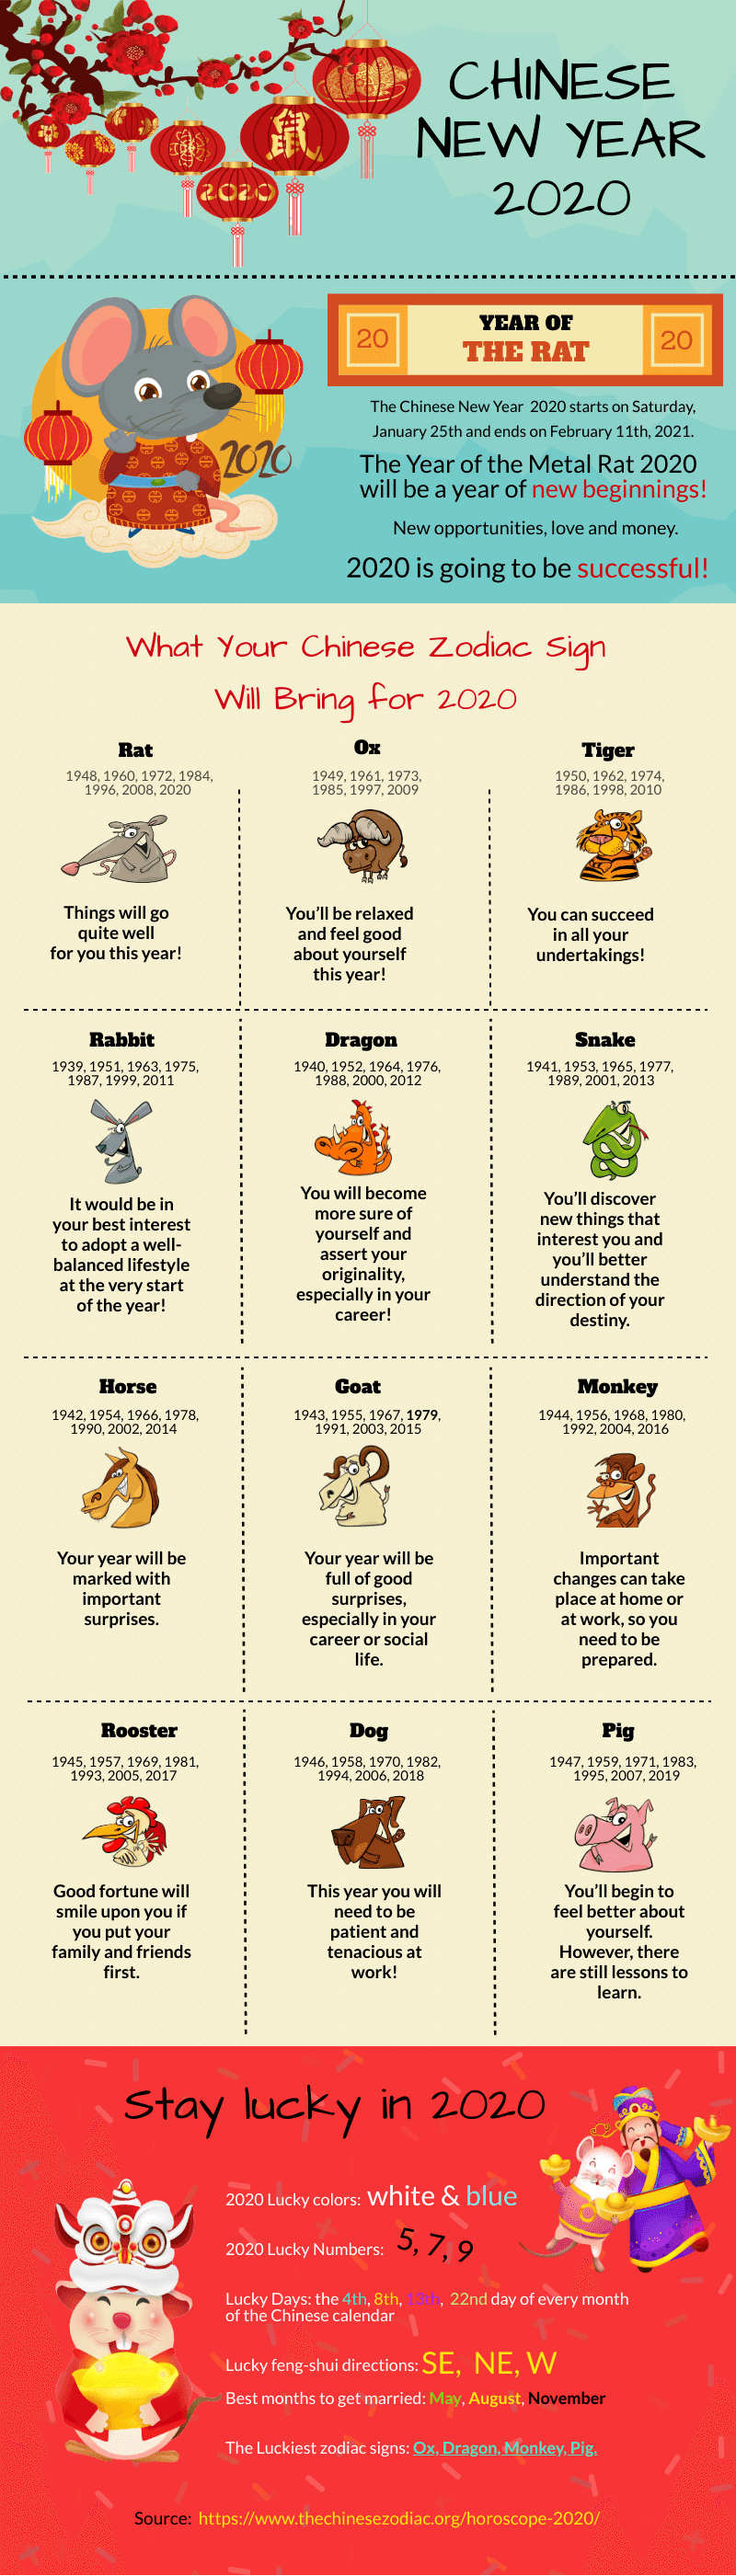 Chinese New Year 2020 #infographic